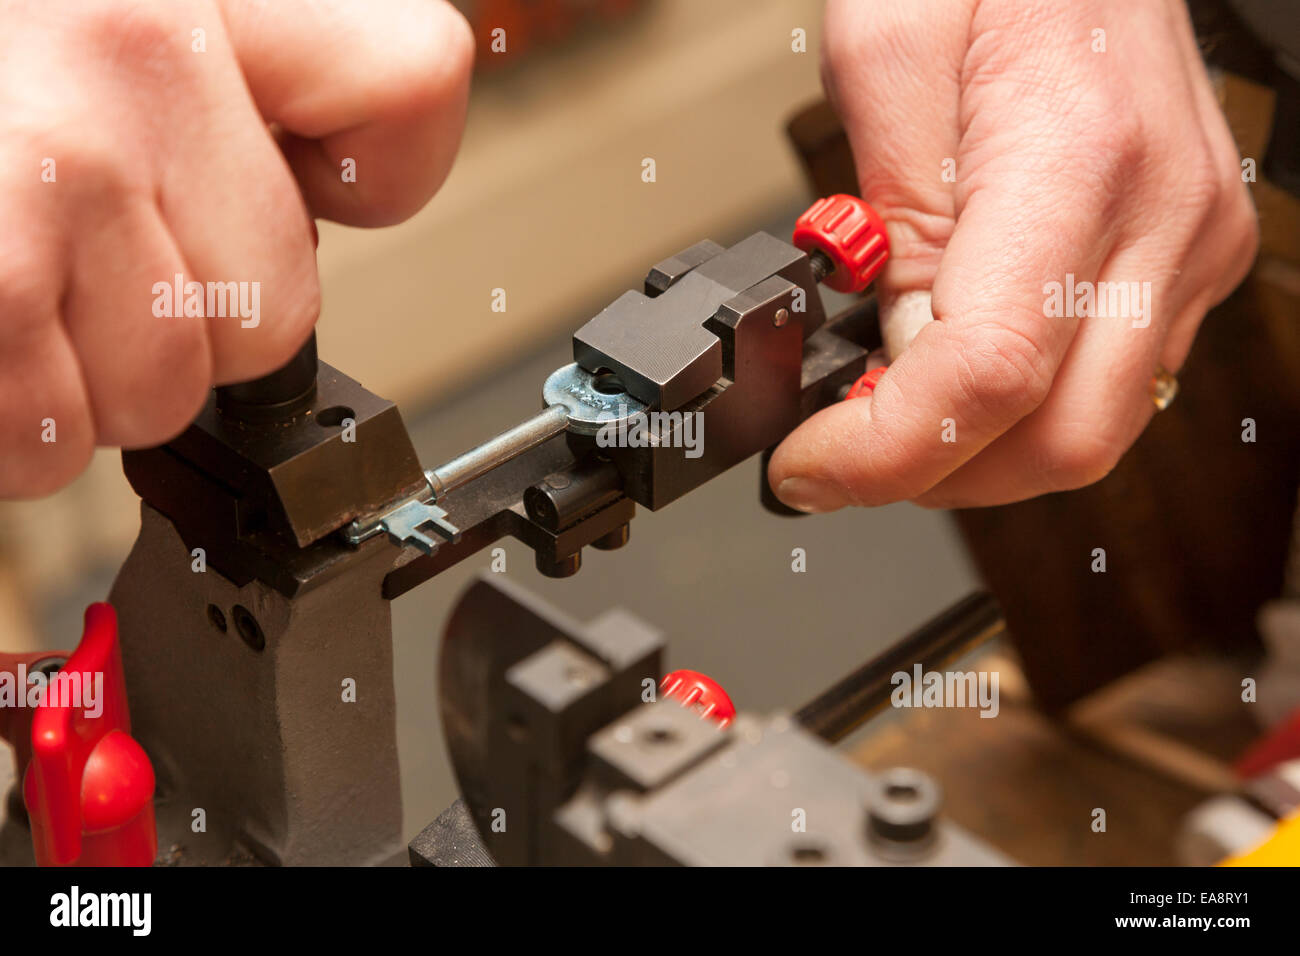 A locksmith cutting keys in a locksmith's shop - Stock Image